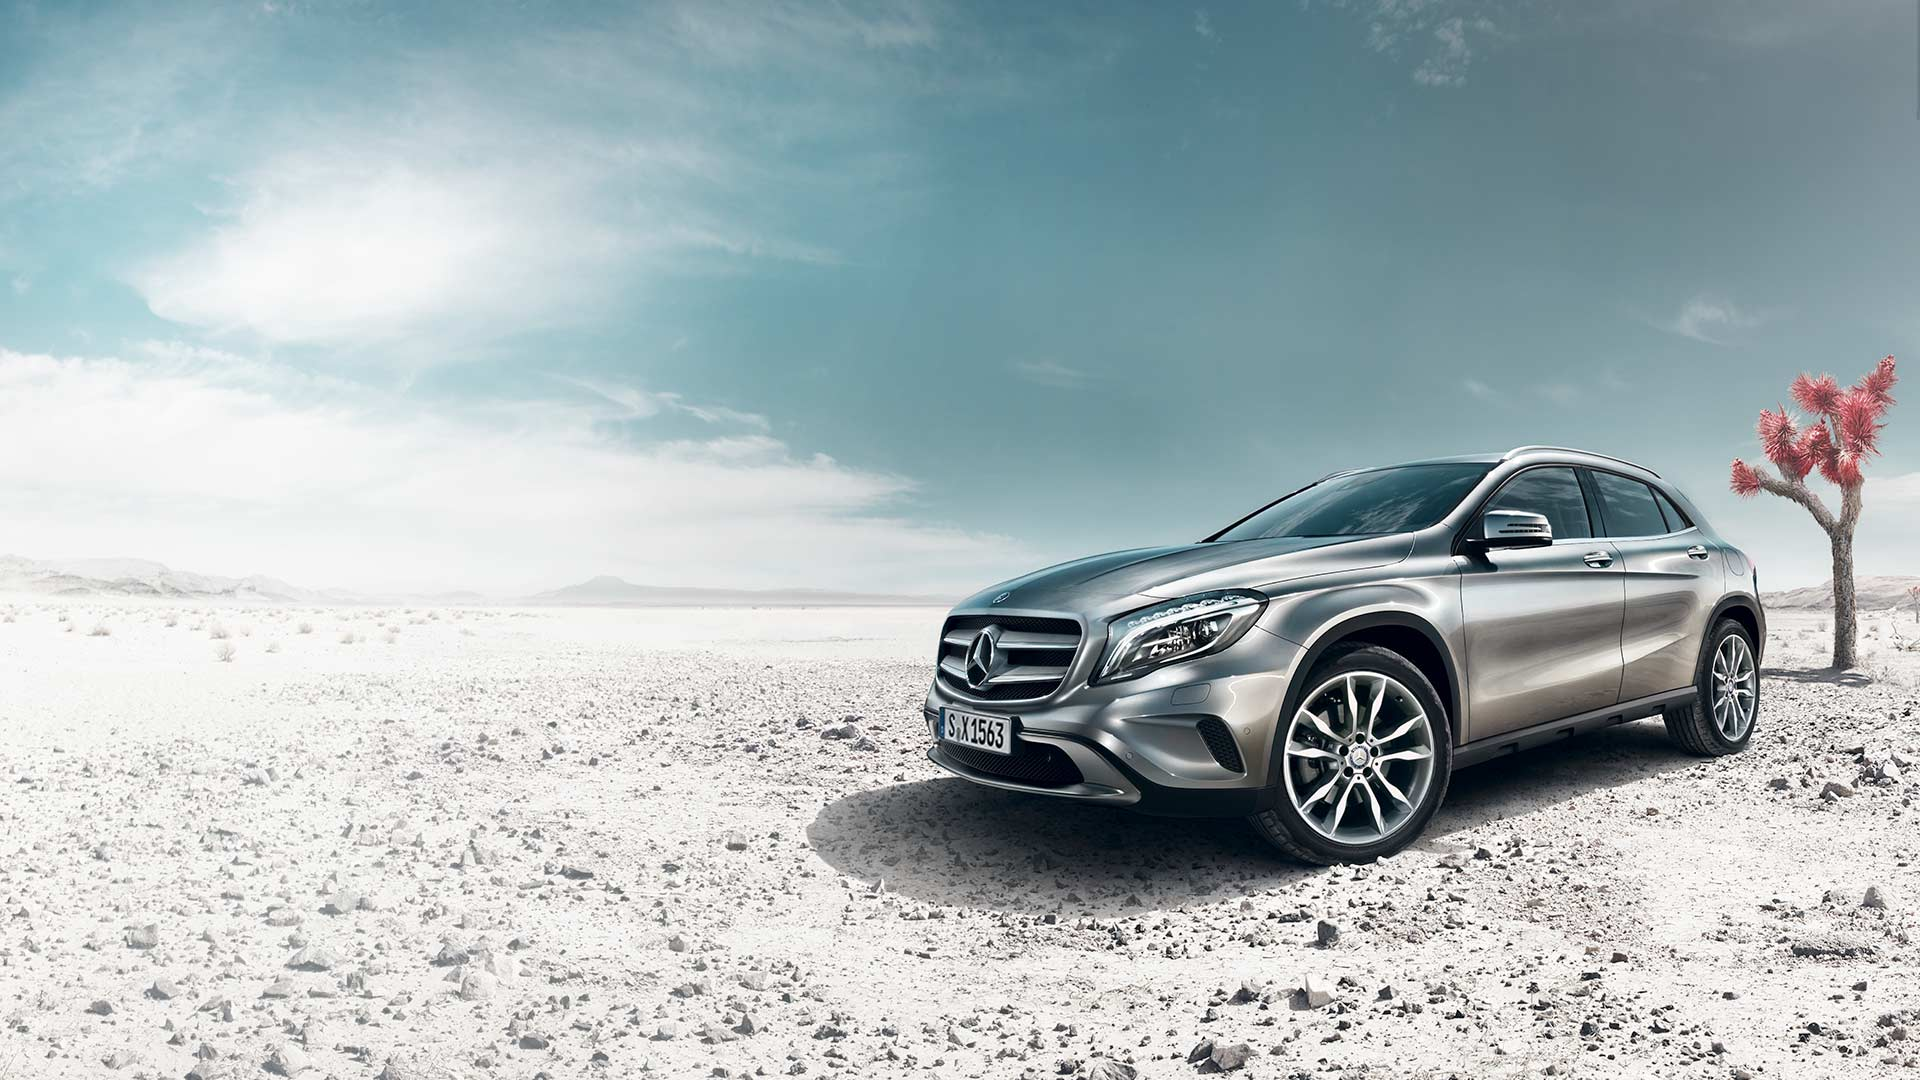 Mercedes GLA Wallpapers (37 Wallpapers)